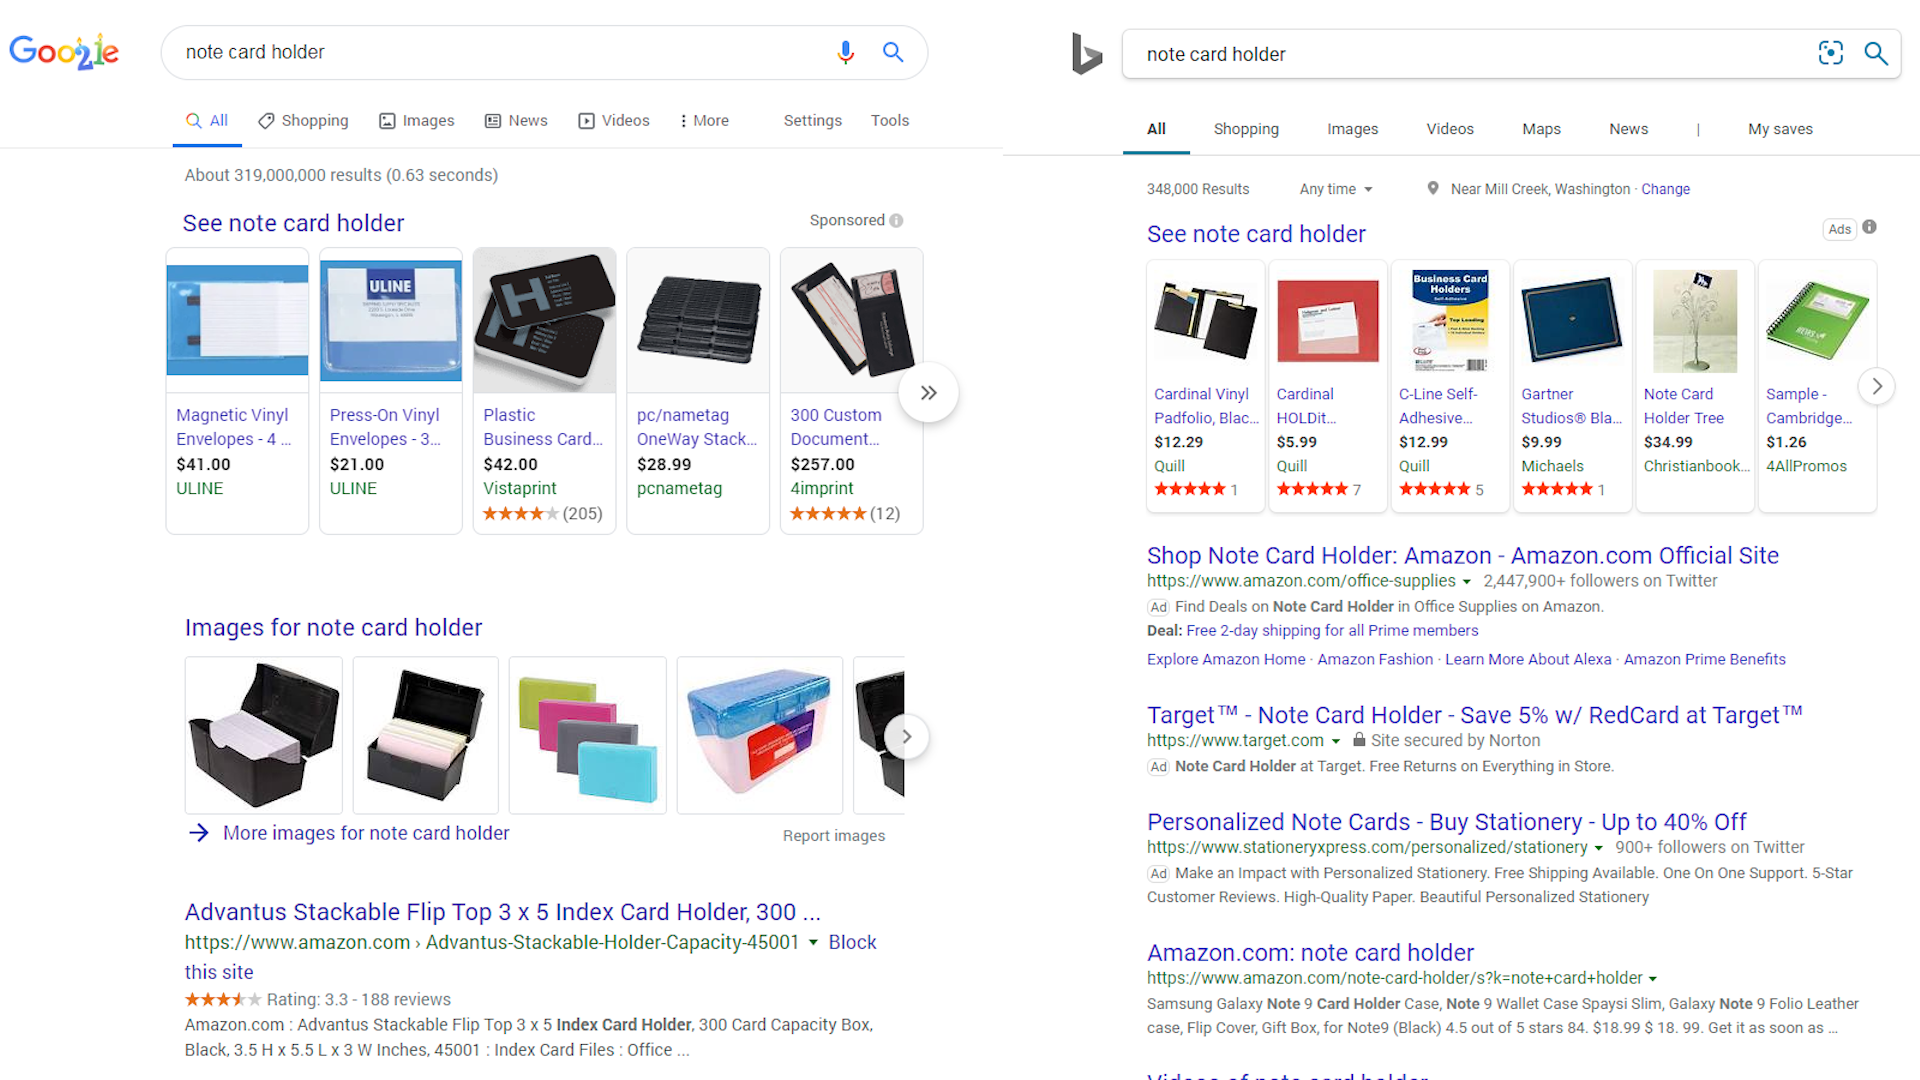 Index Card Holder Search Results on Google and Bing